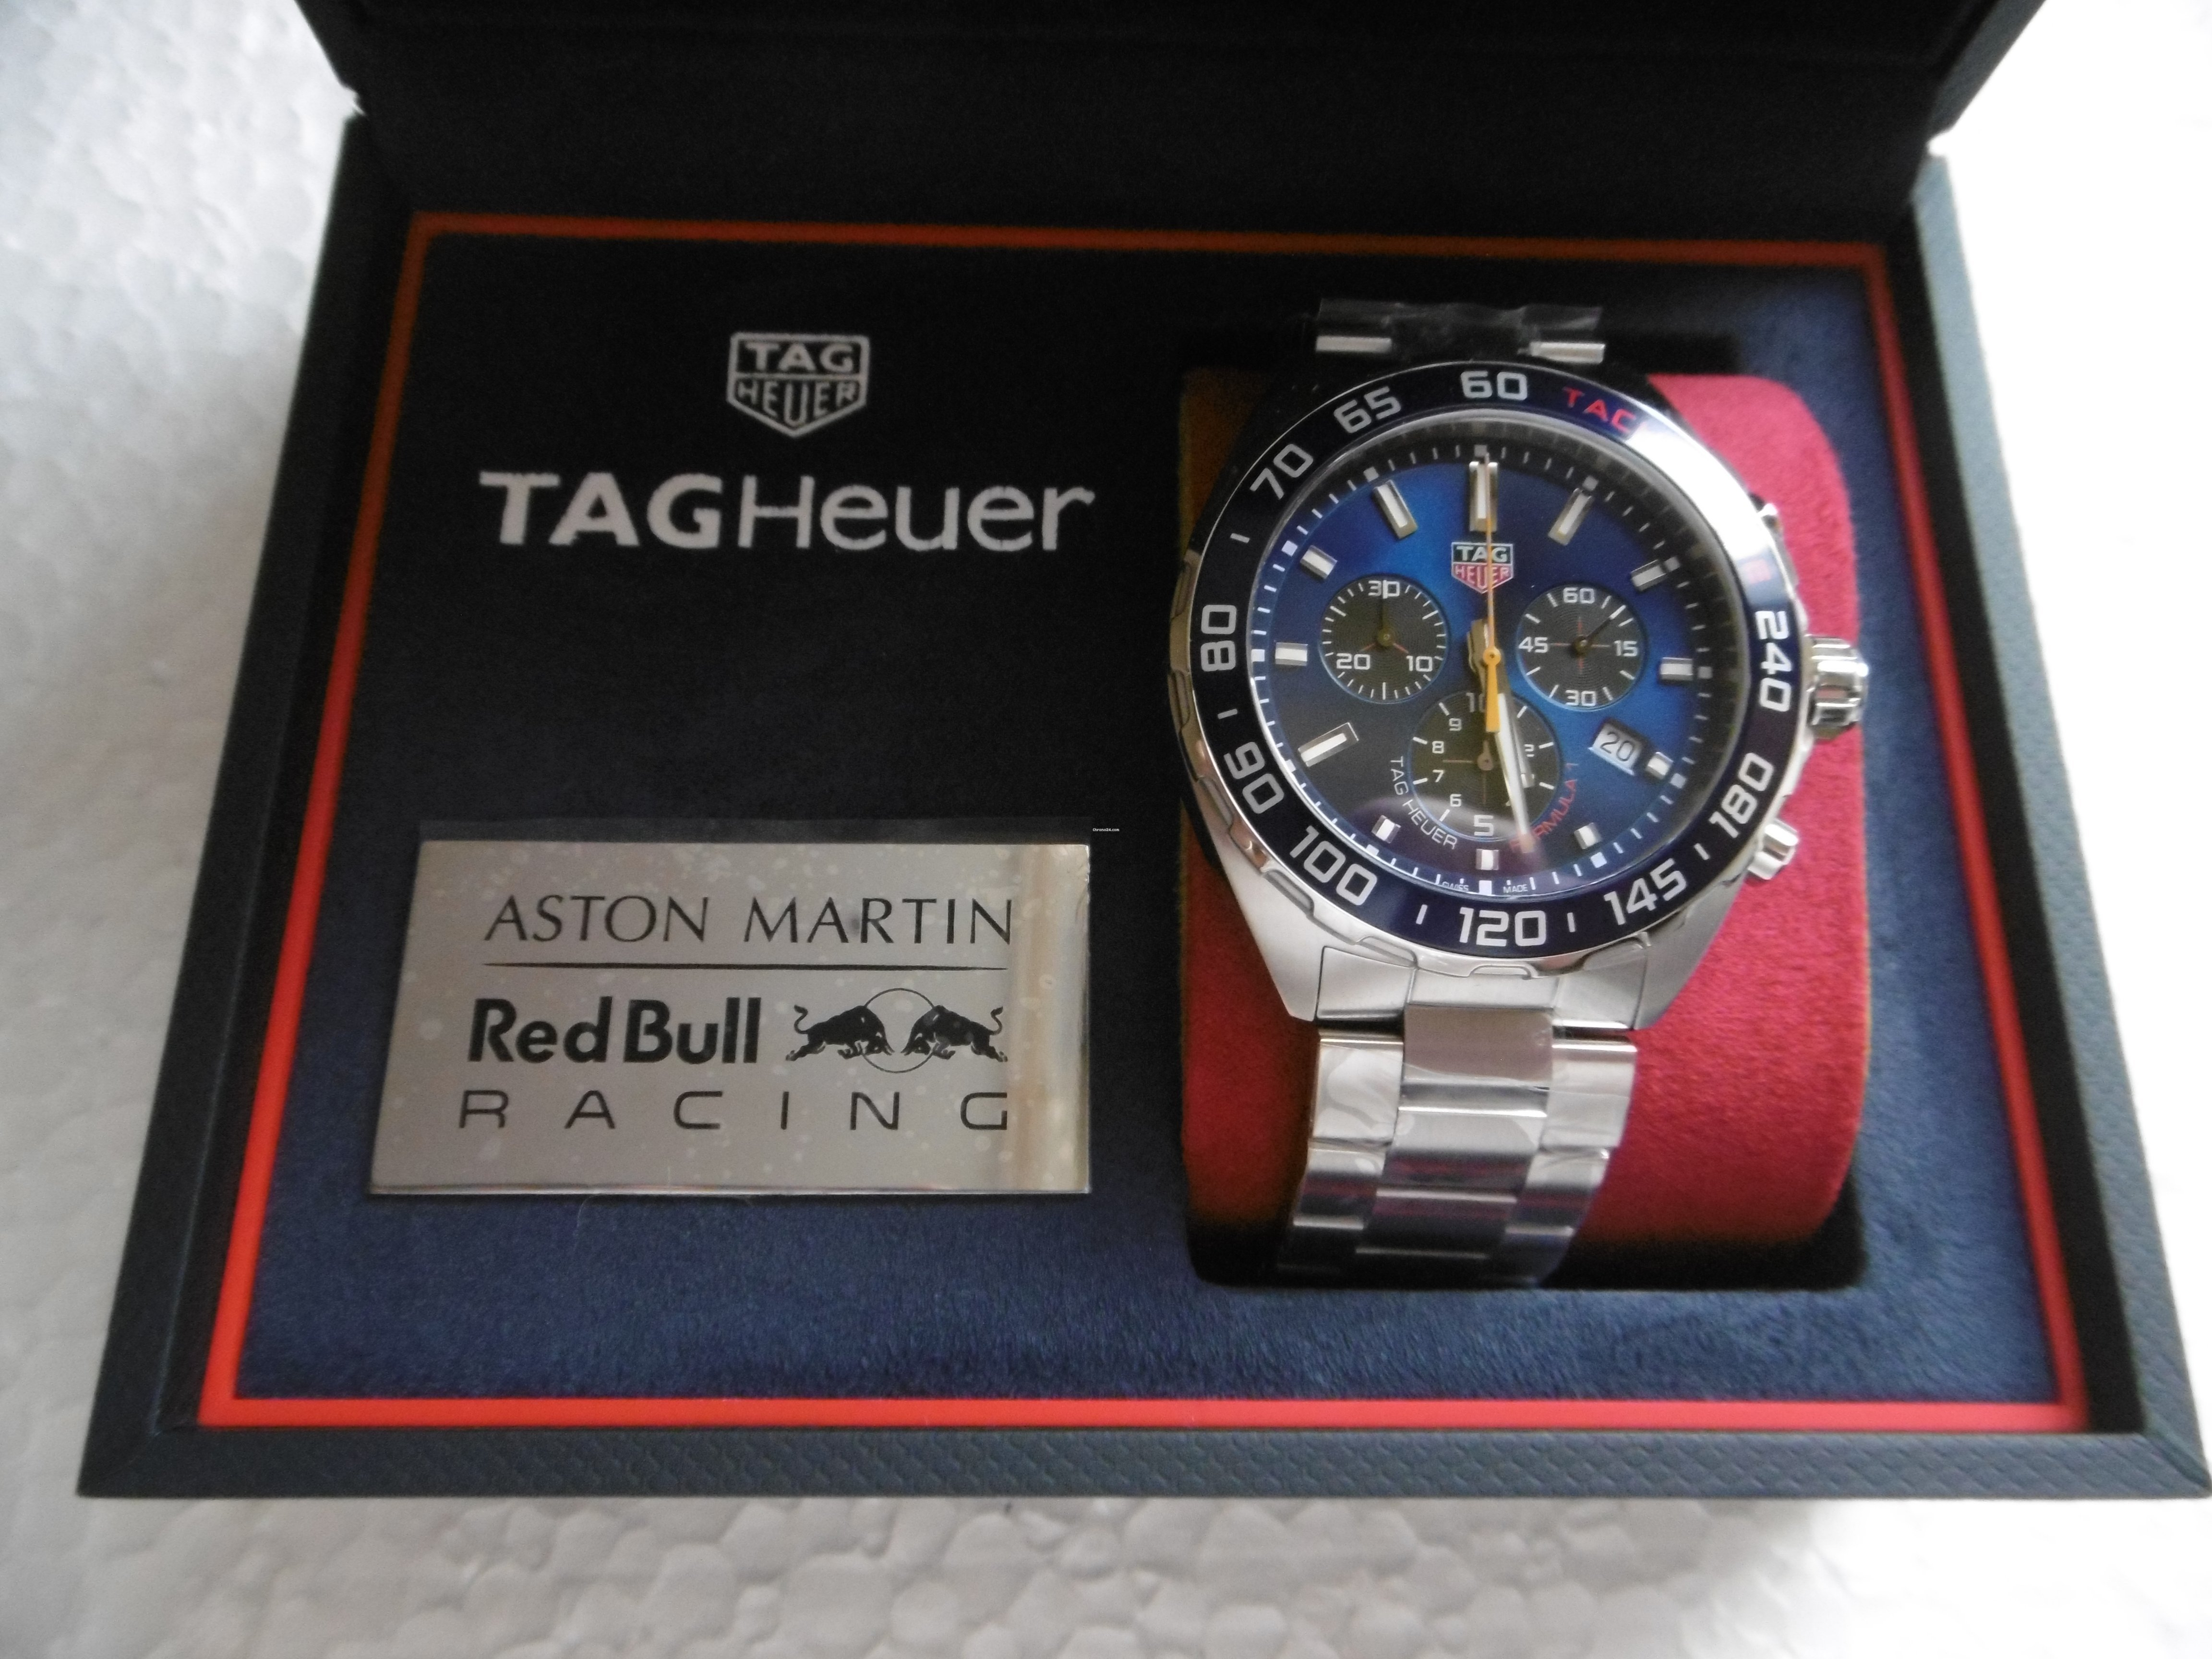 Tag Heuer Formula 1 Aston Martin Red Bull Racing Special For Rm6 434 For Sale From A Trusted Seller On Chrono24